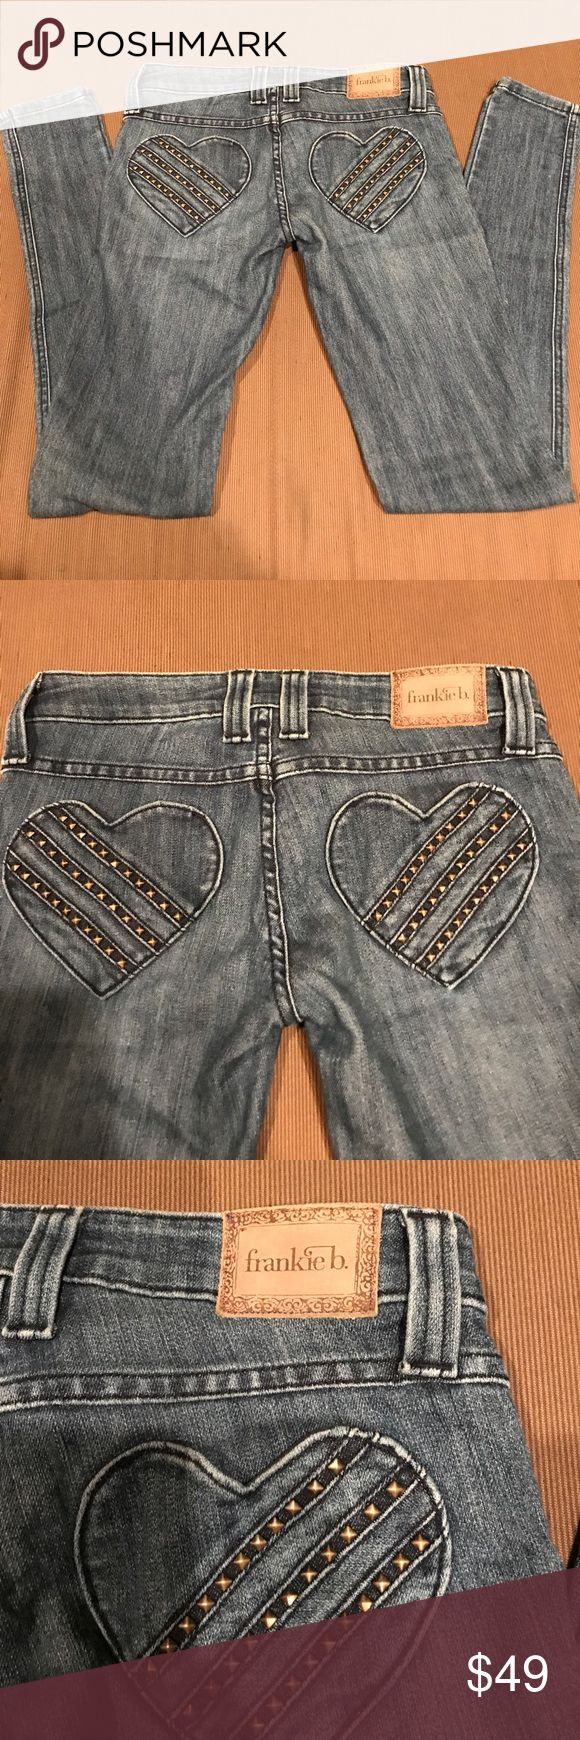 Frankie B Studded Heart ❤️ Pocket low cut jeans 25 Frankie B Studded Heart ❤️ Pocket low cut jeans 25.  Skinny legs great pre loved condition.    Have stretch Frankie B. Jeans Skinny